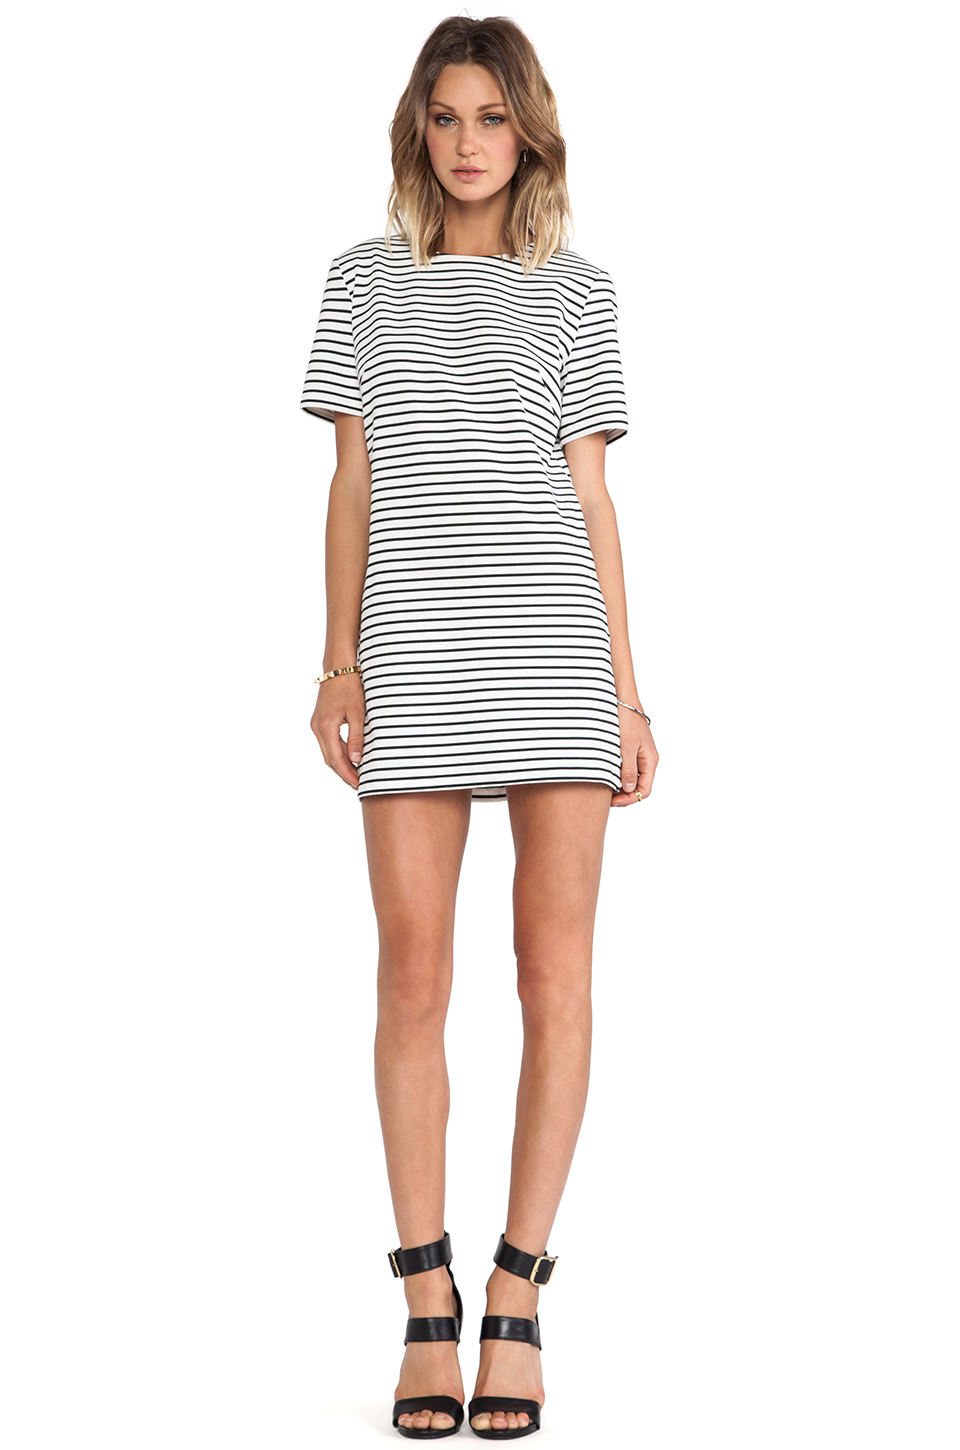 Cameo The Motion Dress in Stripe | REVOLVE